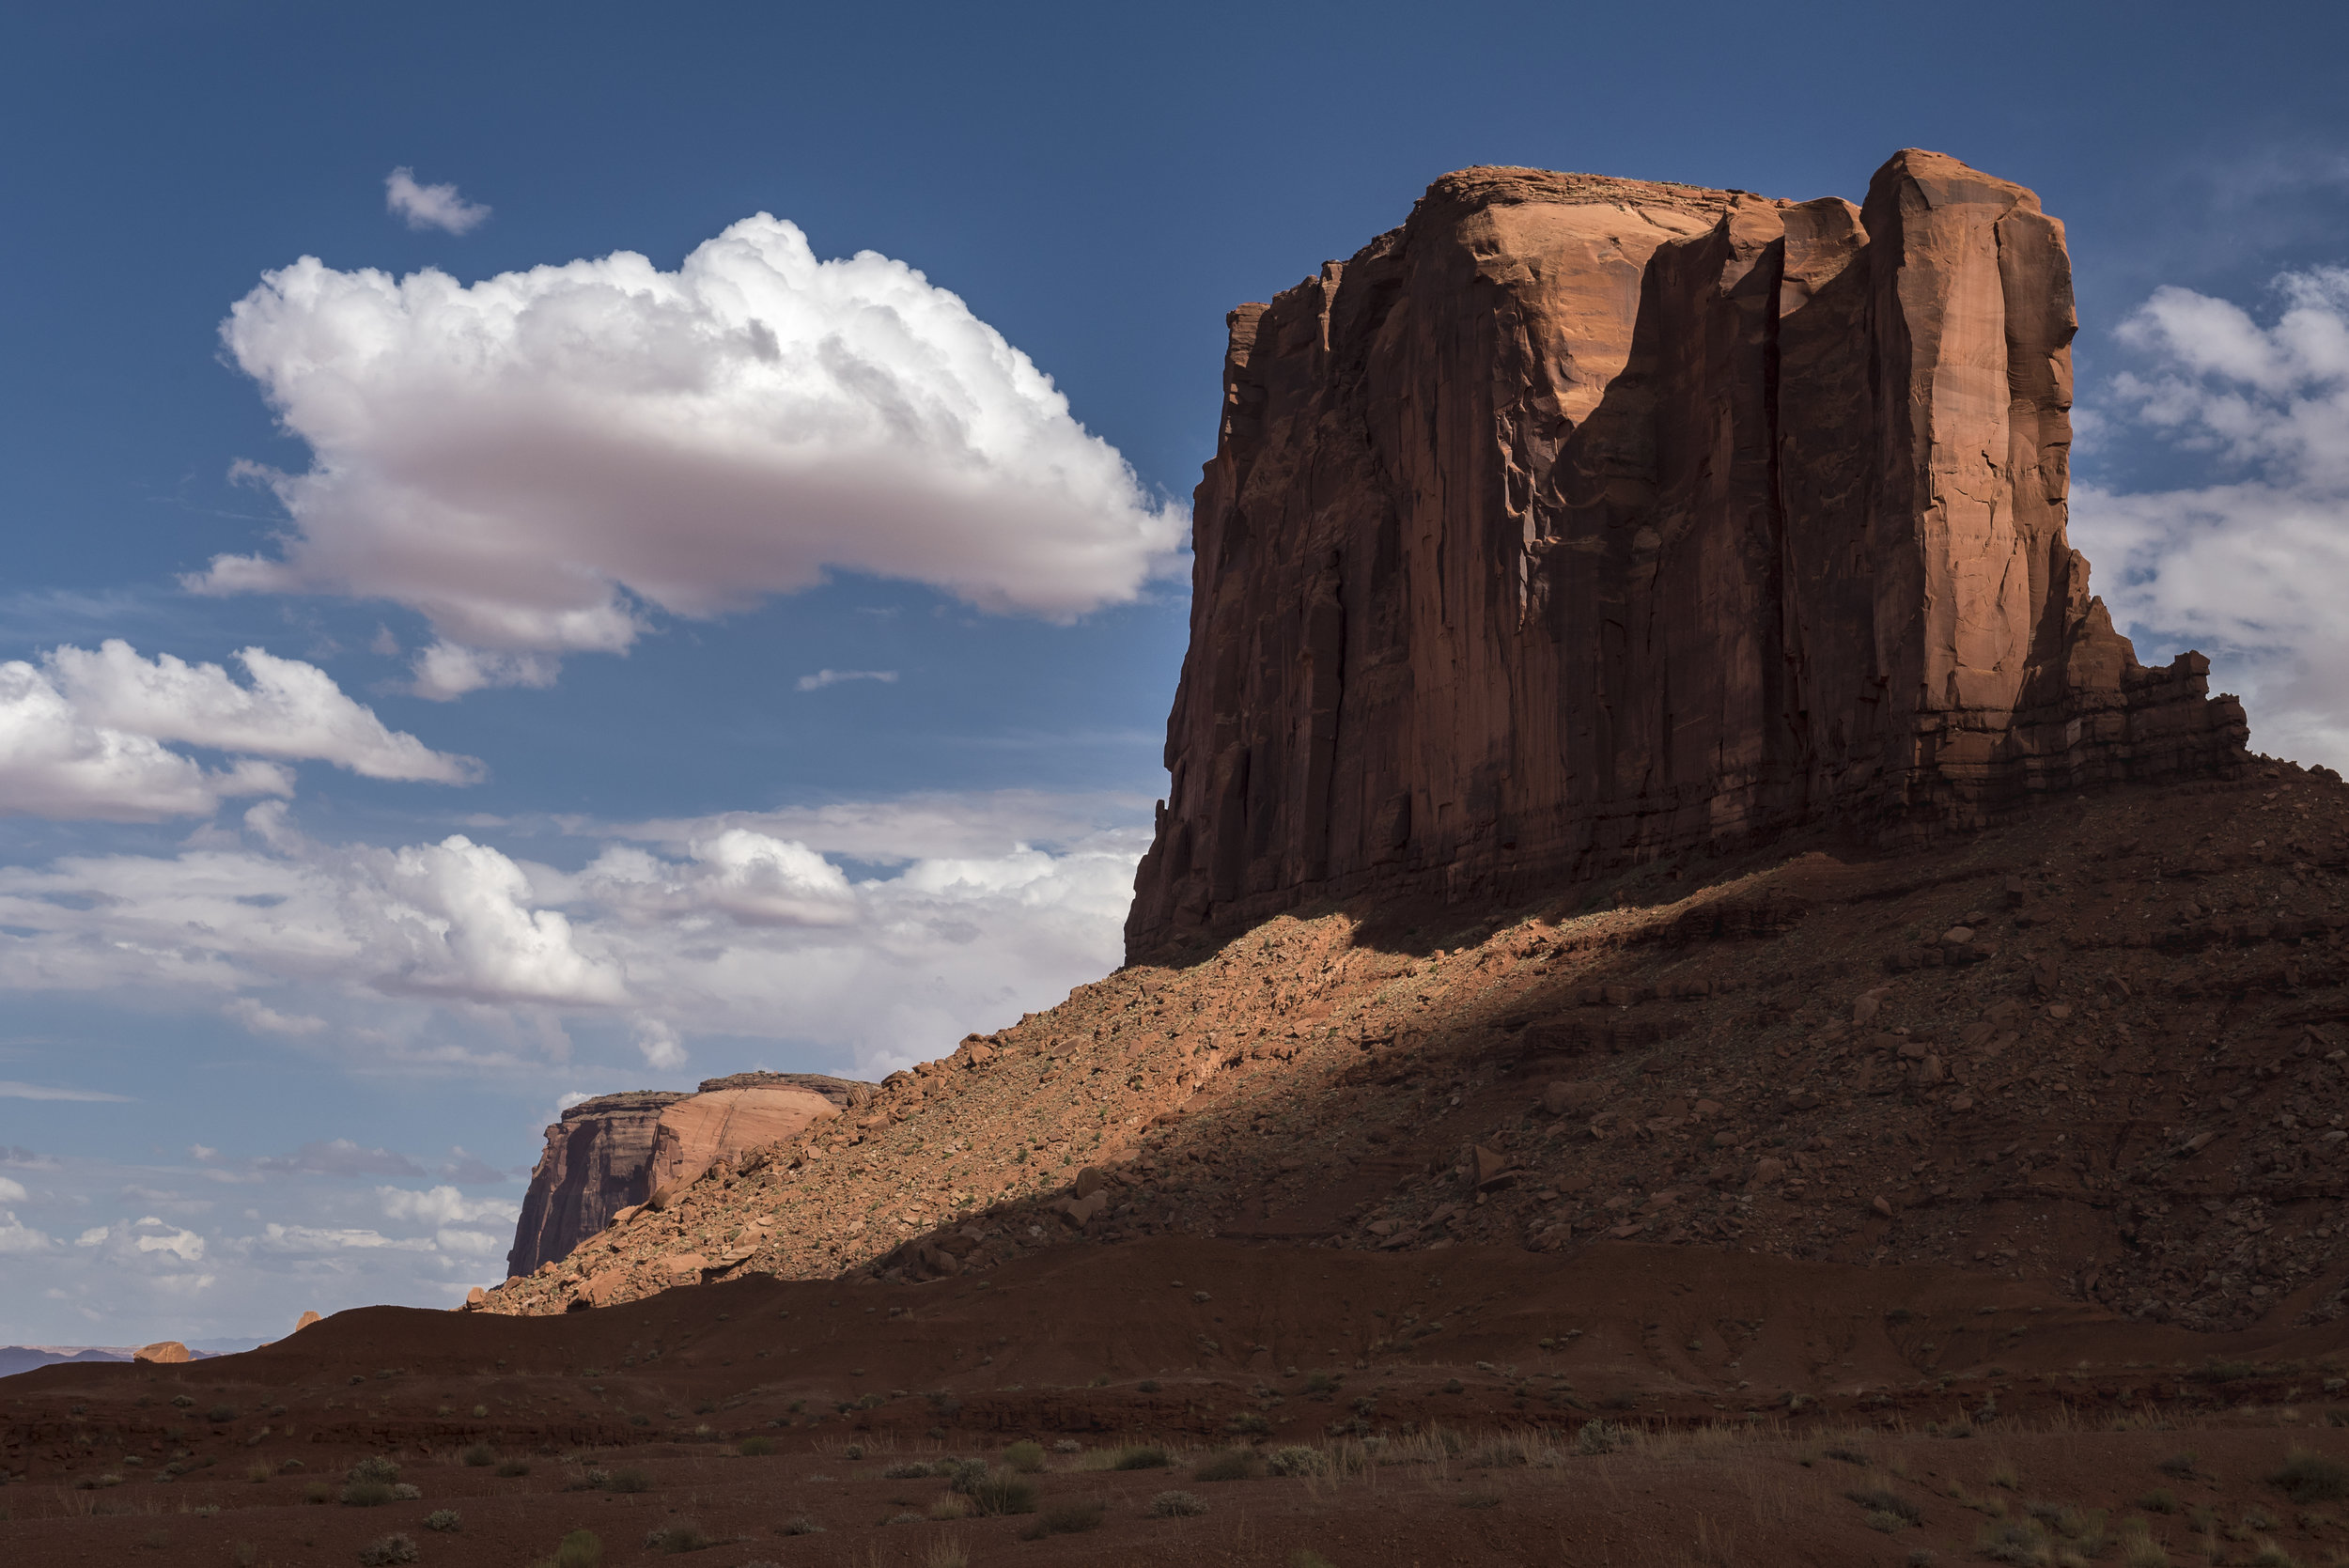 grand canyon + monument valley 2016